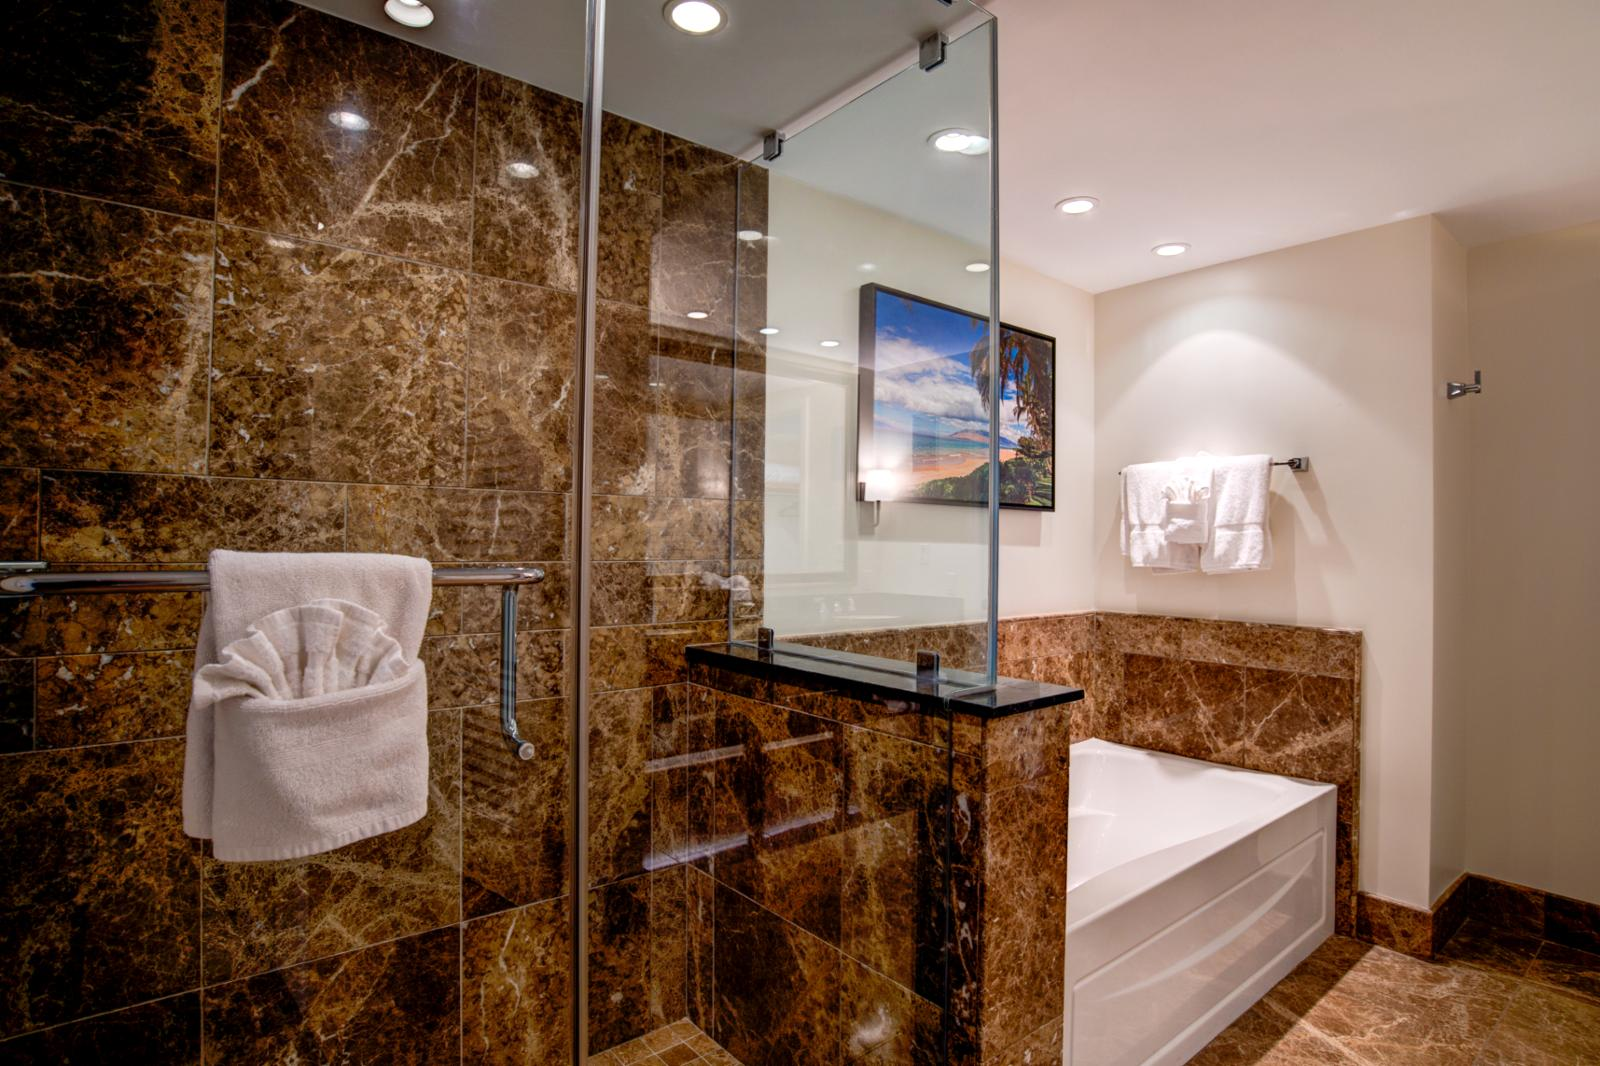 Alternate angle showing the floor to ceiling glass enclosed shower